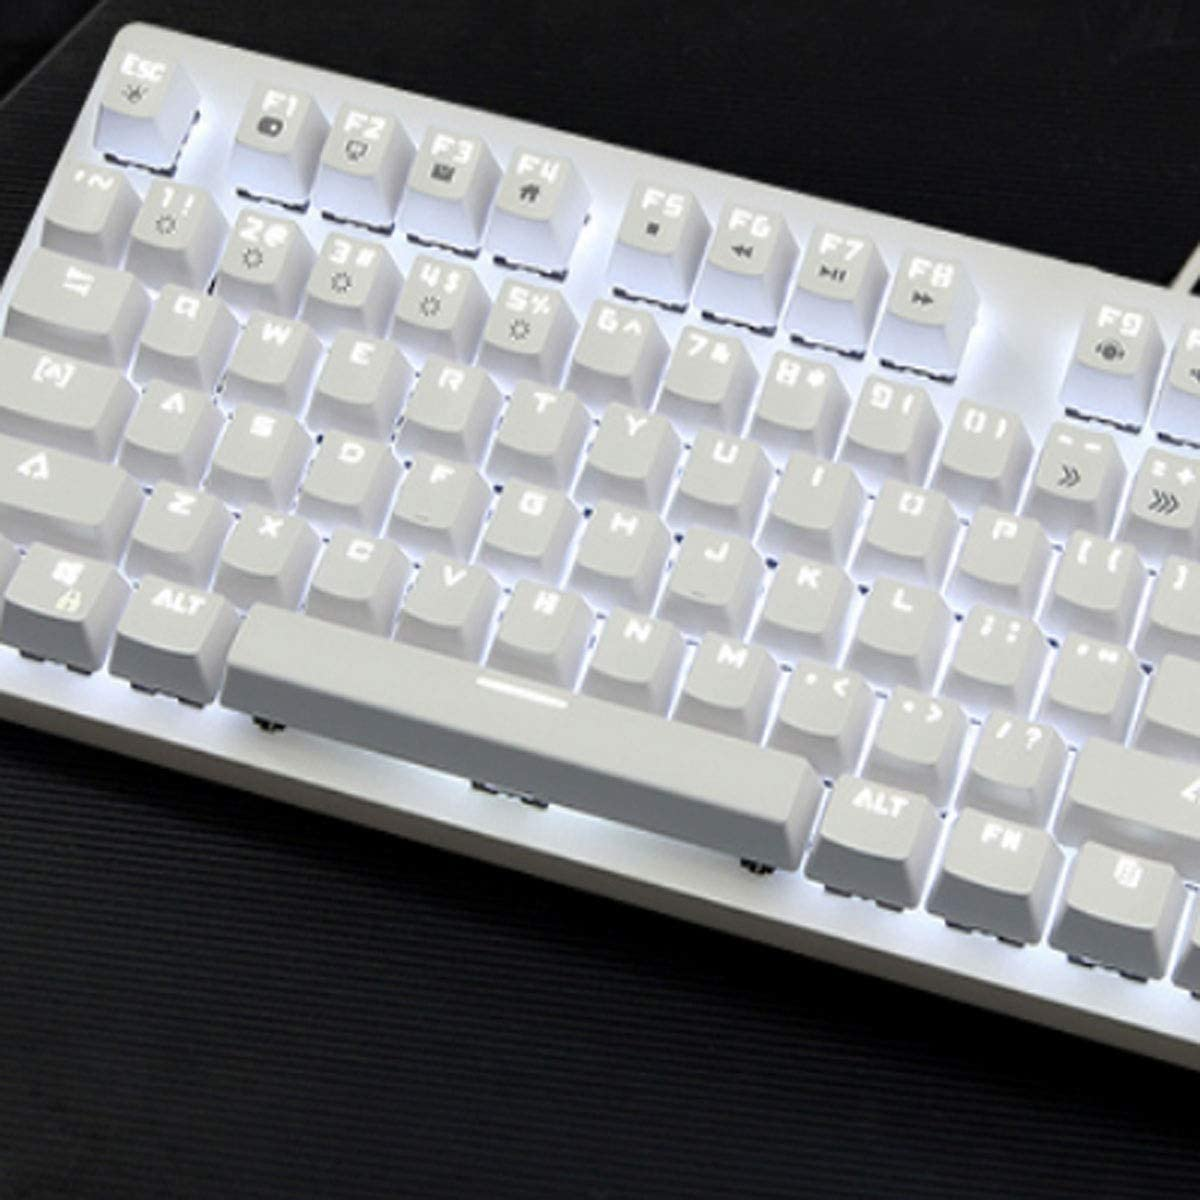 Color : White Mechanical Carrying Backlight Youshangshipin Keyboard Esport Game Special Style White, 44.414.54cm Computer Keyboard